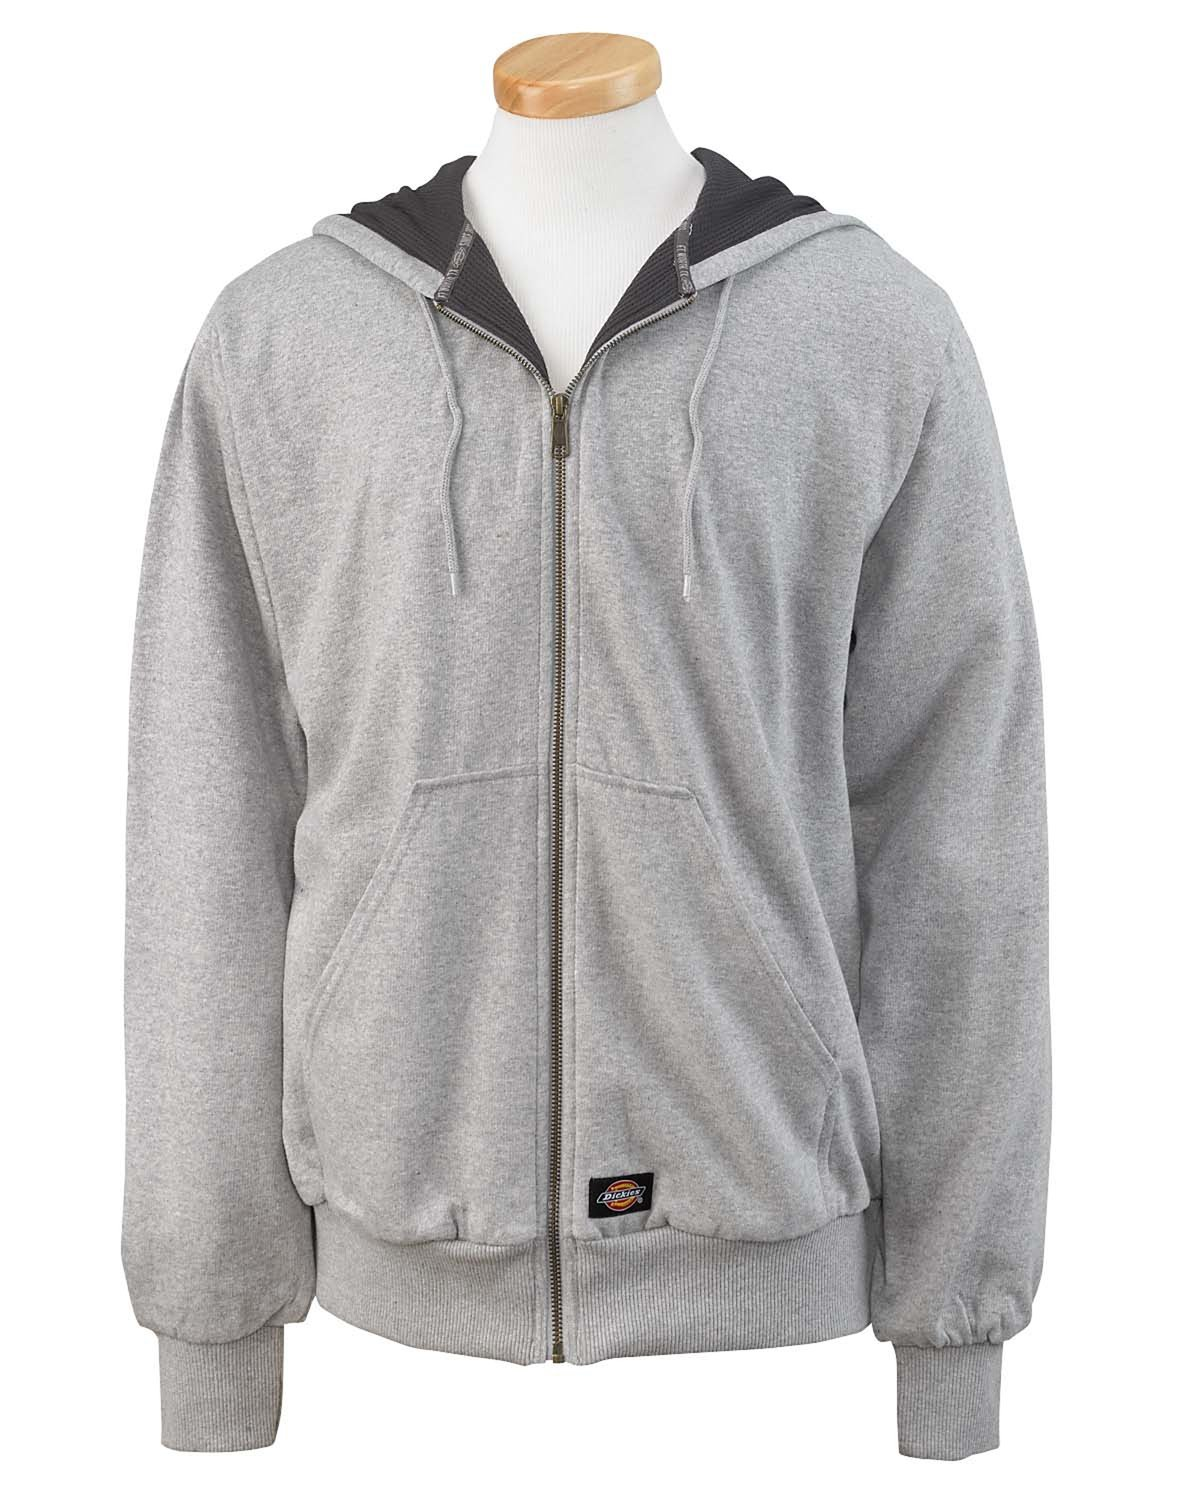 Dickies Men's 470 Gram Thermal-Lined Fleece Jacket Hooded Sweatshirt ASH GRAY